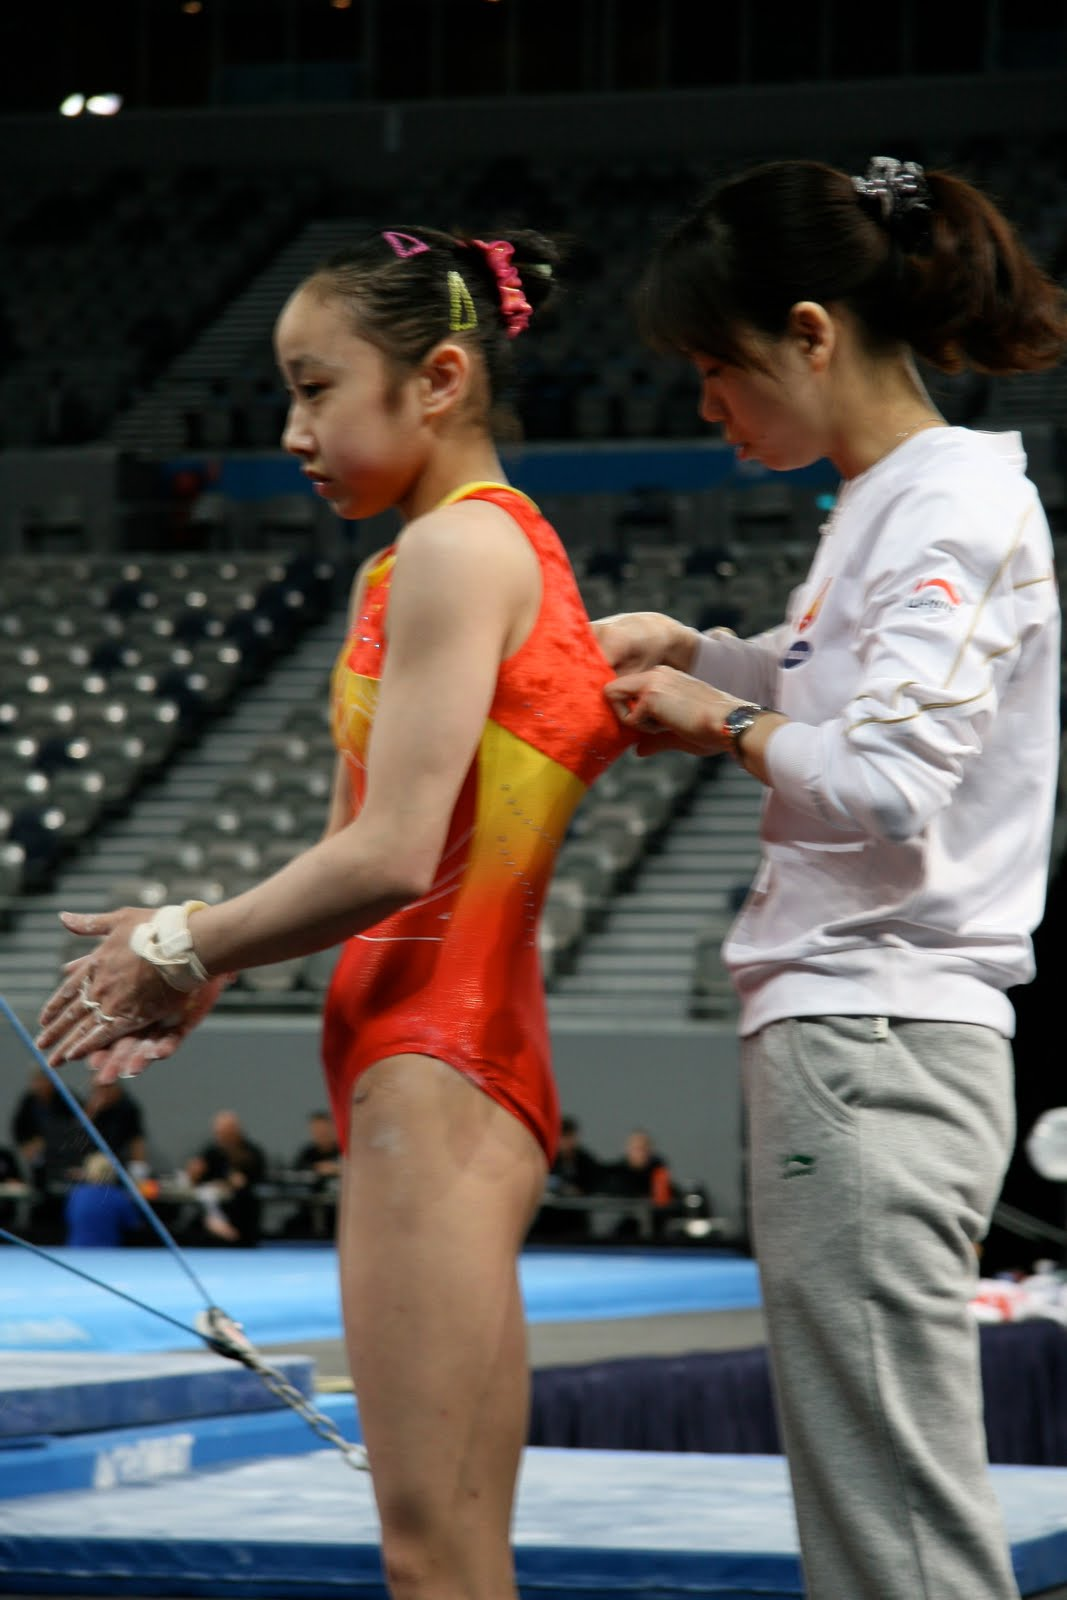 Olympic Female Gymnast Wardrobe Malfunctions http://www.couch-gymnast.blogspot.com/2010/05/album-nonsense-candids-and-faves.html